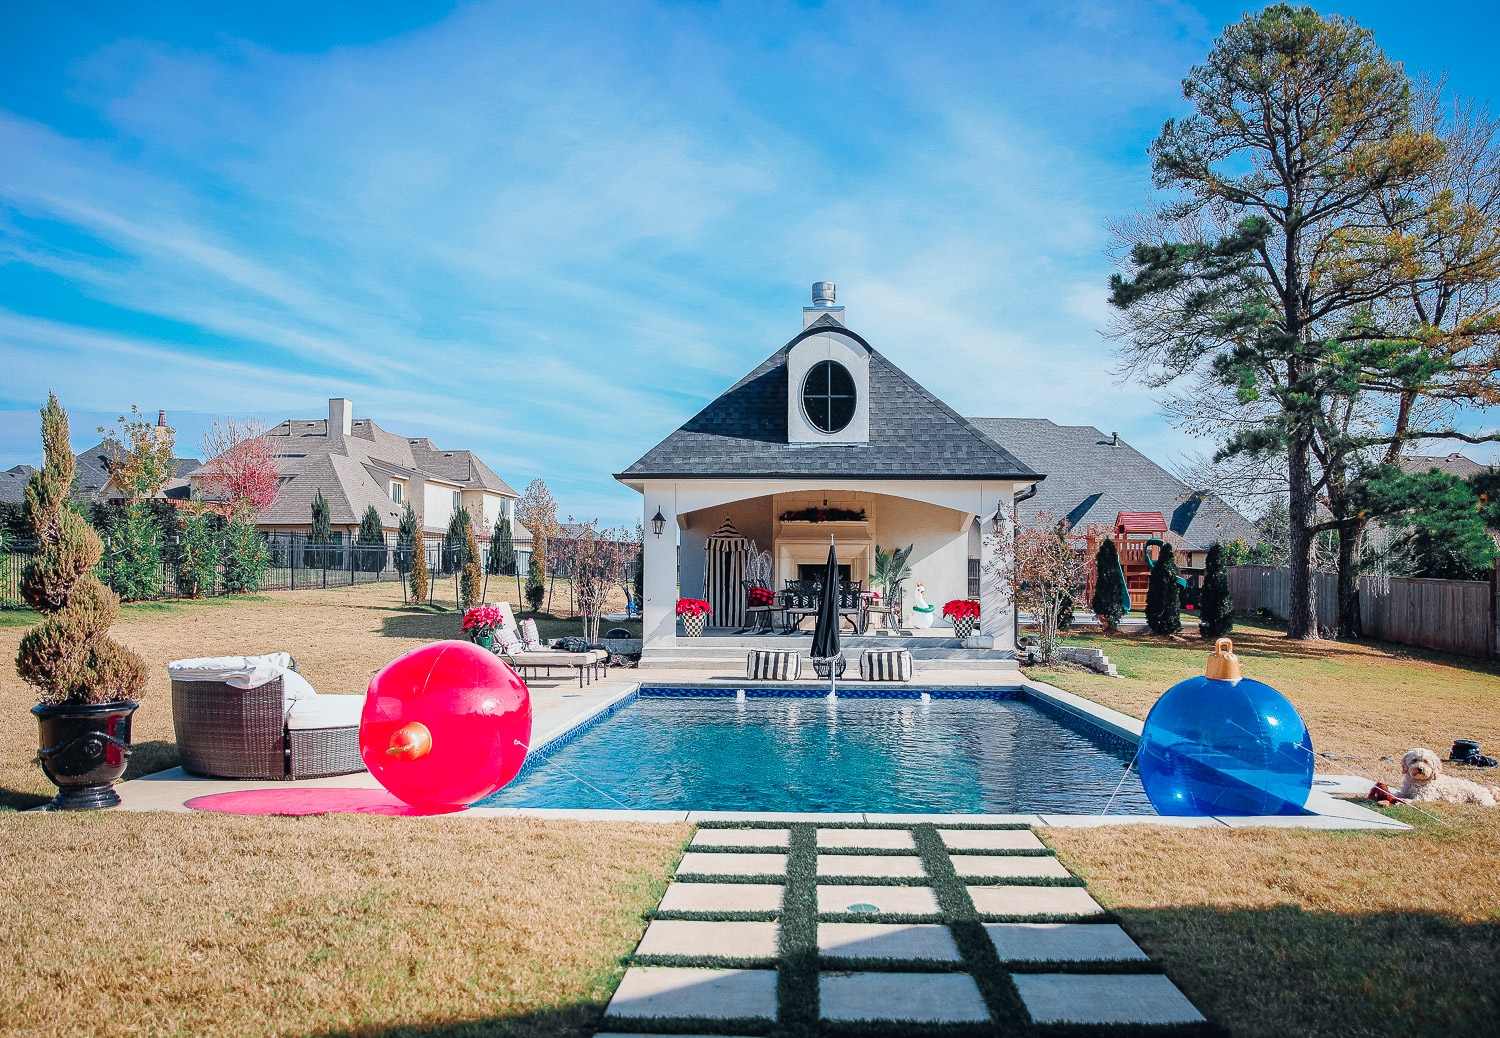 backyard decor christmas, outdoor pool christmas decor, walmart pool ornament, emily gemma backyard |Christmas Pool Decorations by popular US life and style blog, The Sweetest Thing: image of a pool house decorated with Christmas garland, black and red buffalo check throw pillows, Christmas tree decor, poinsettia plants, inflatable Christmas ornaments, and candles.